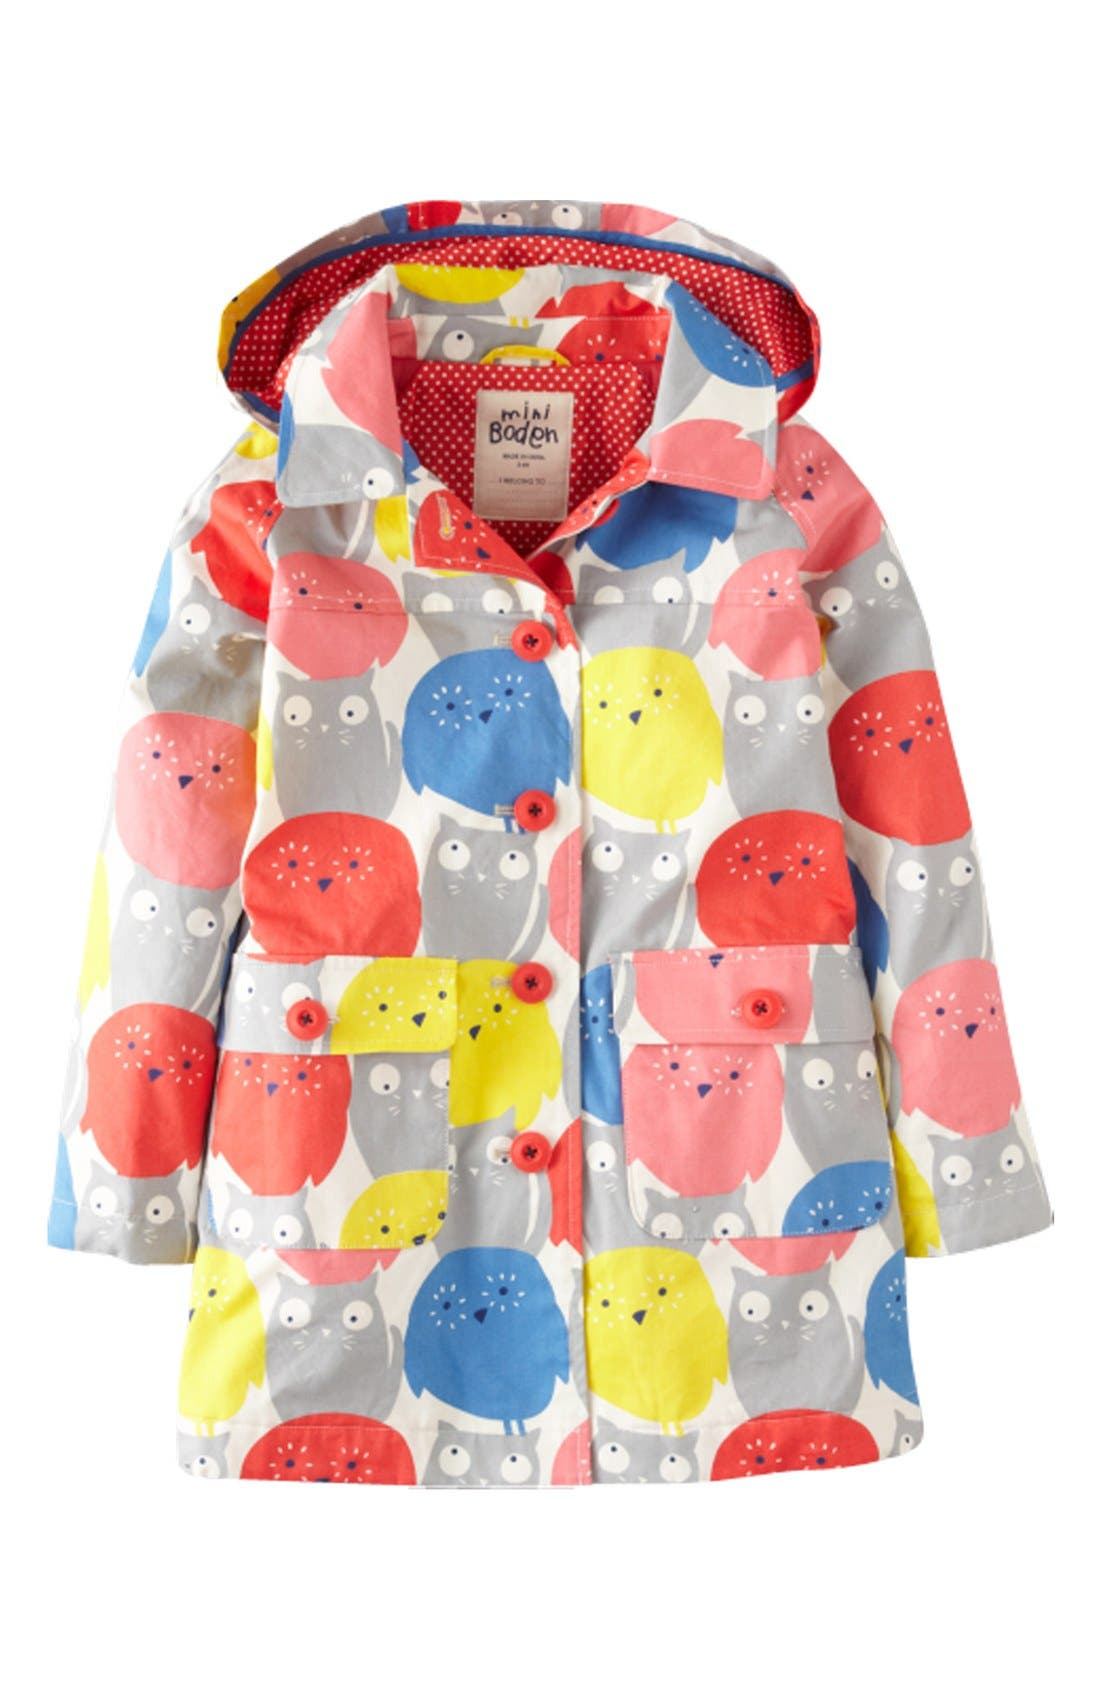 Alternate Image 1 Selected - Mini Boden 'Rainy Day' Raincoat (Toddler Girls, Little Girls & Big Girls)